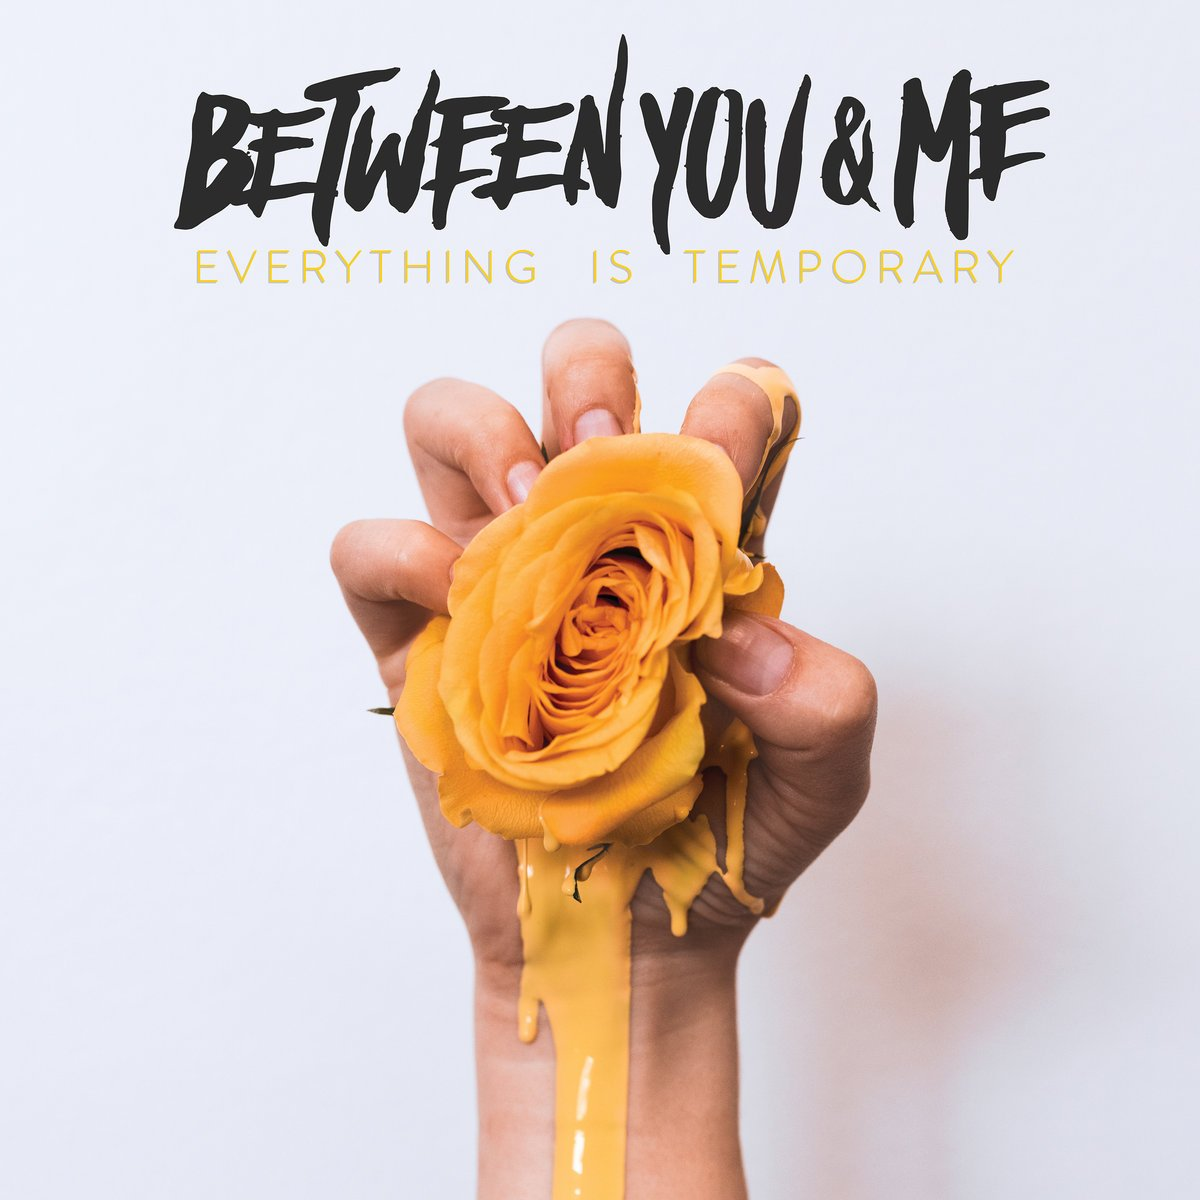 Between You & Me - Everything is Temporary   Piper Payne   Hopeless Records